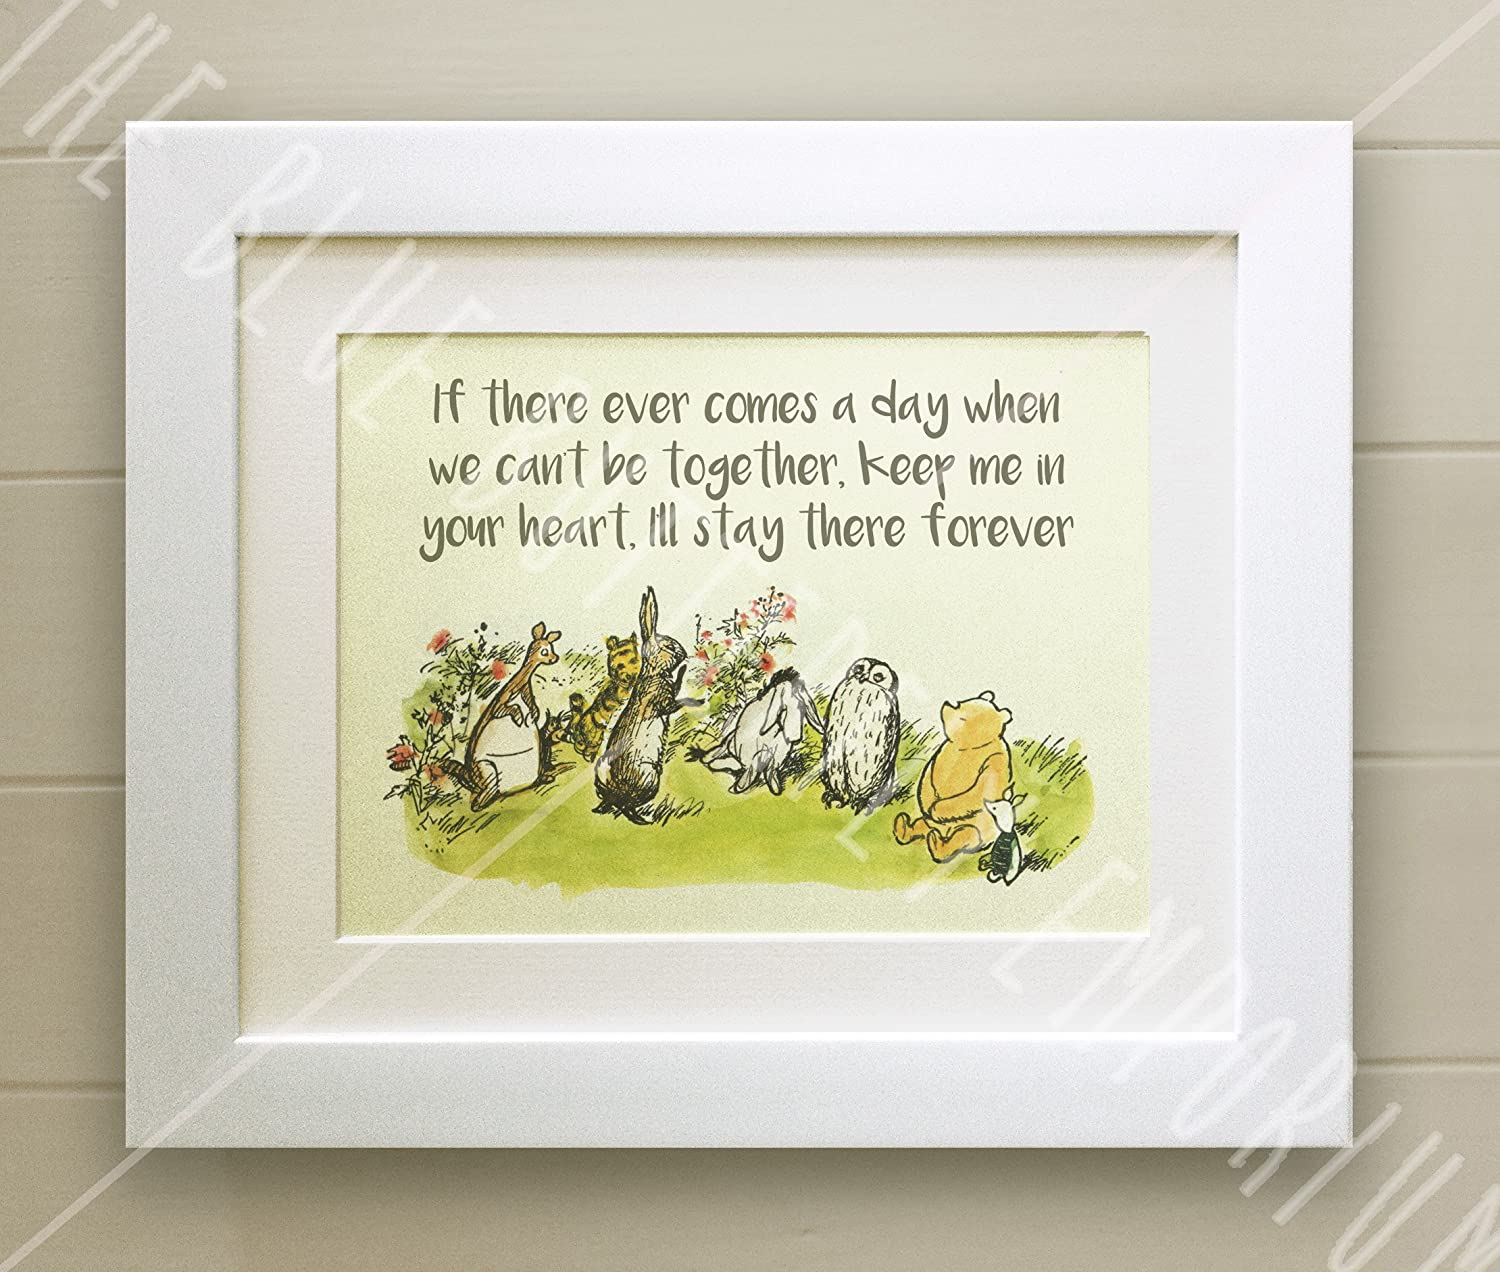 Winnie the pooh framed quote print new babybirth nursery winnie the pooh framed quote print new babybirth nursery picture gift pooh bear if there every comes a day when we cant be together white wash shabby negle Image collections